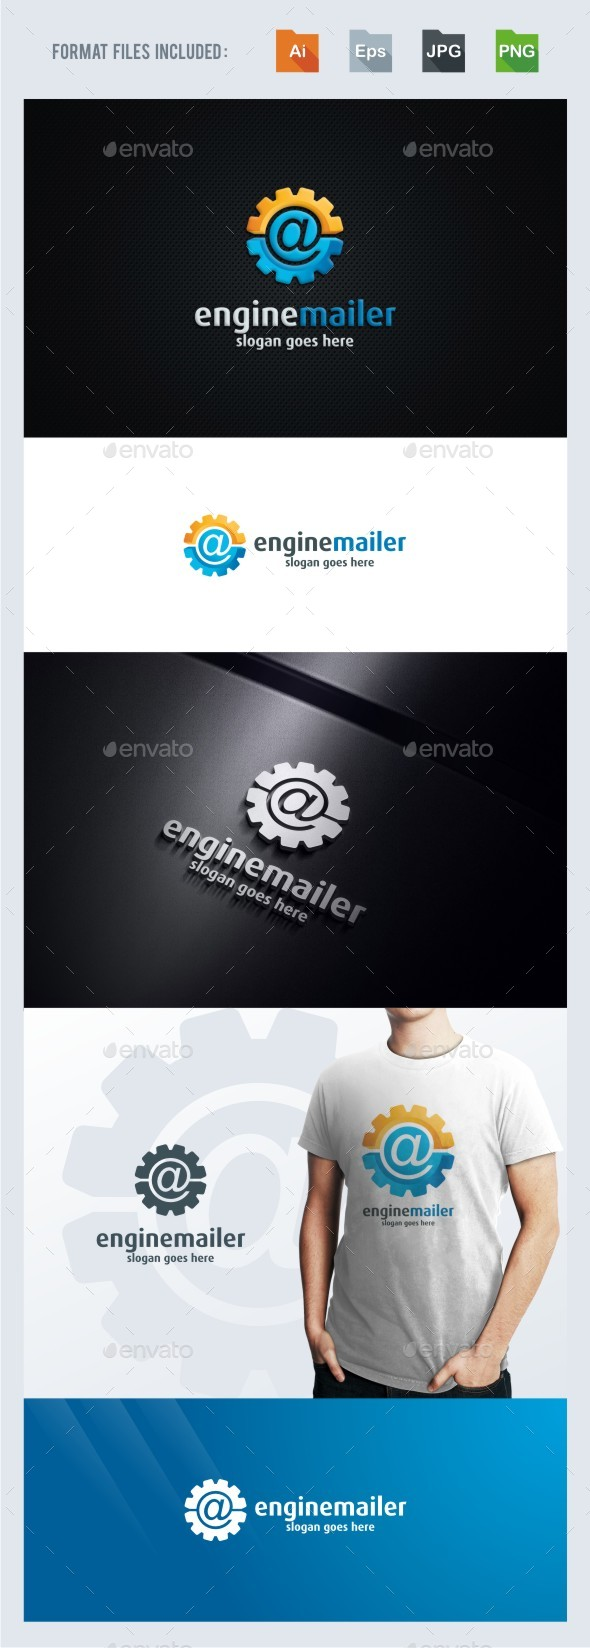 Engine Mailer Logo Template by BeLoveArt | GraphicRiver